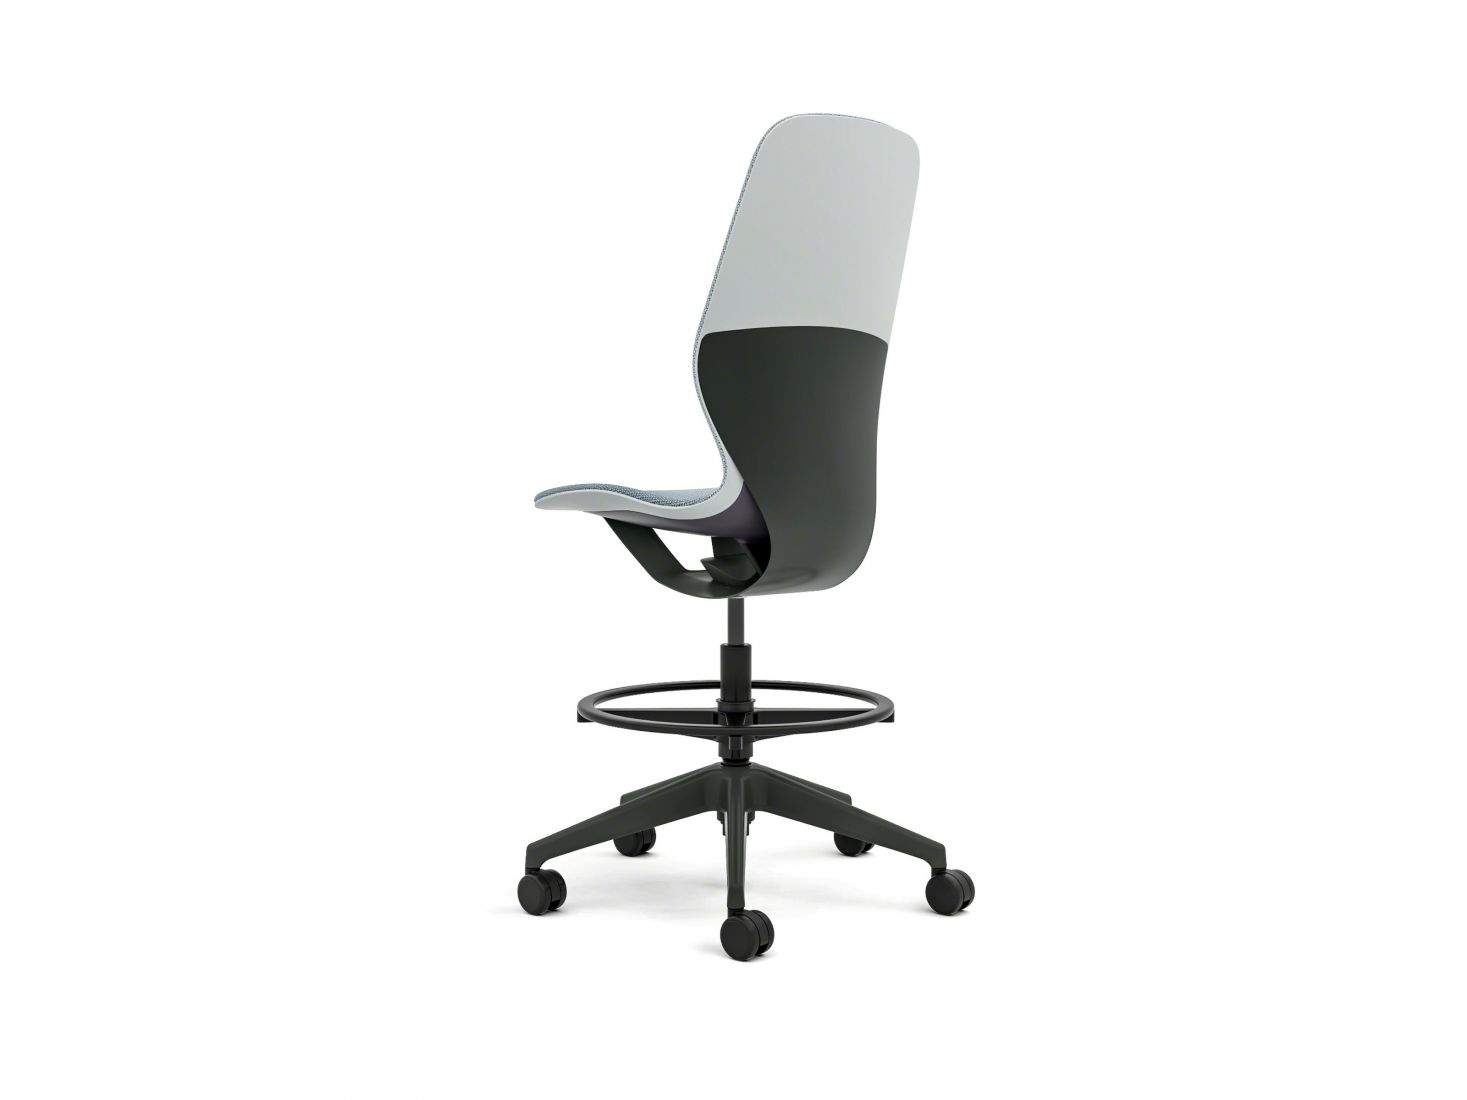 Office furniture coating